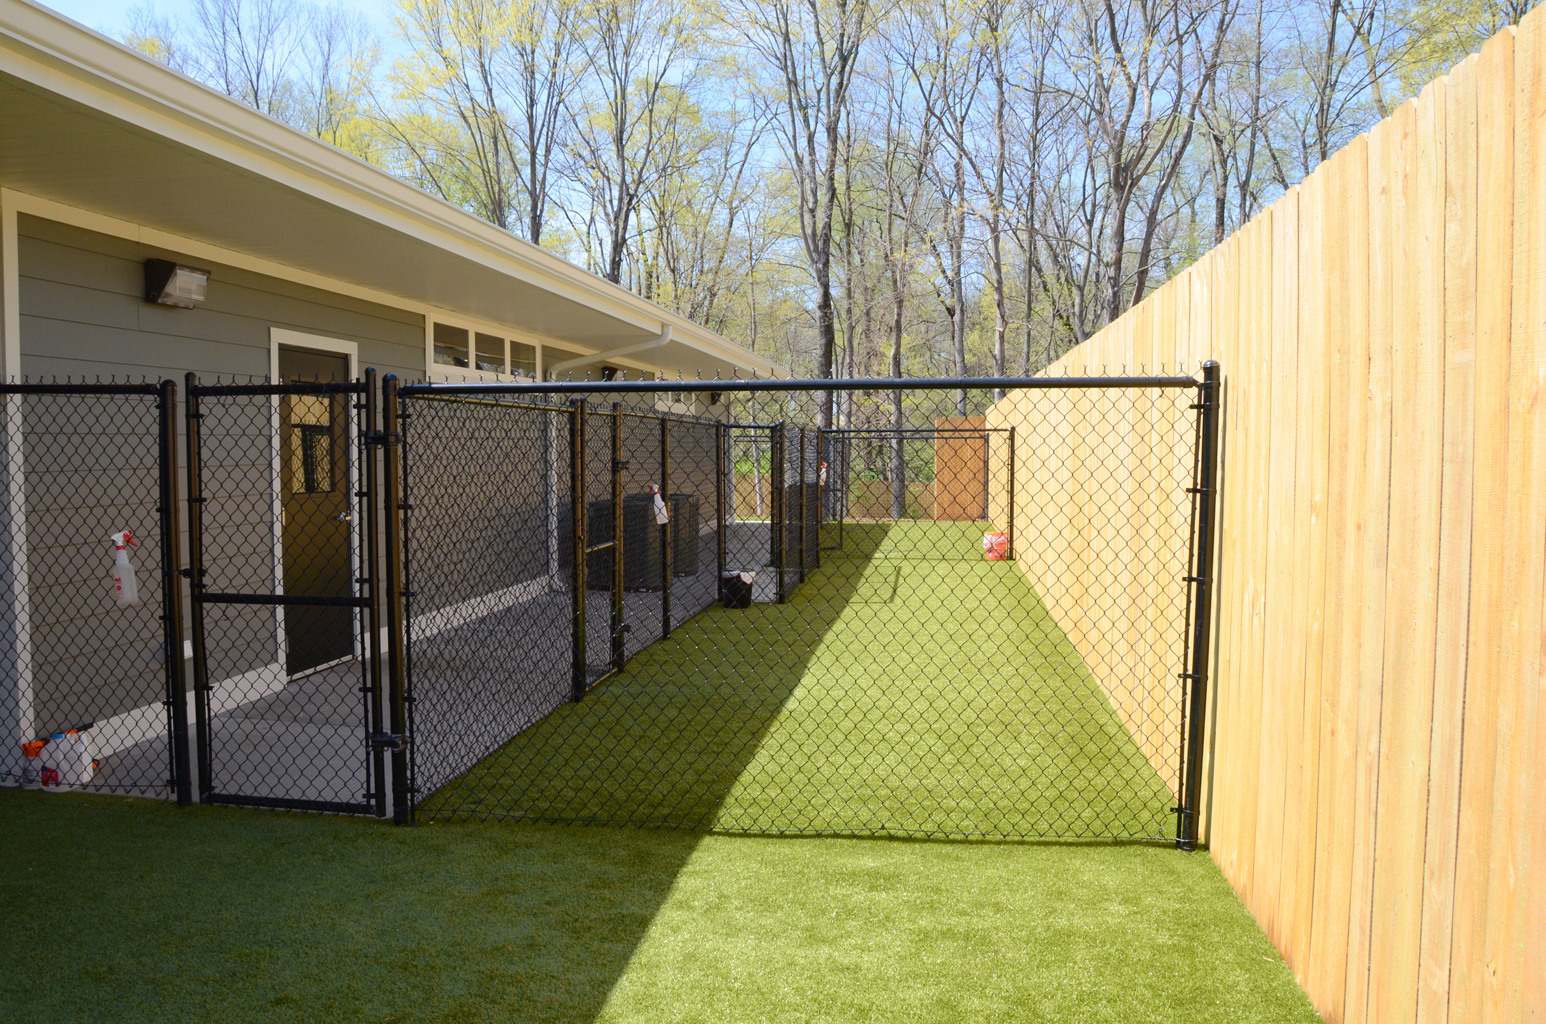 Boarding For Dogs At The Pet Station Country Club The